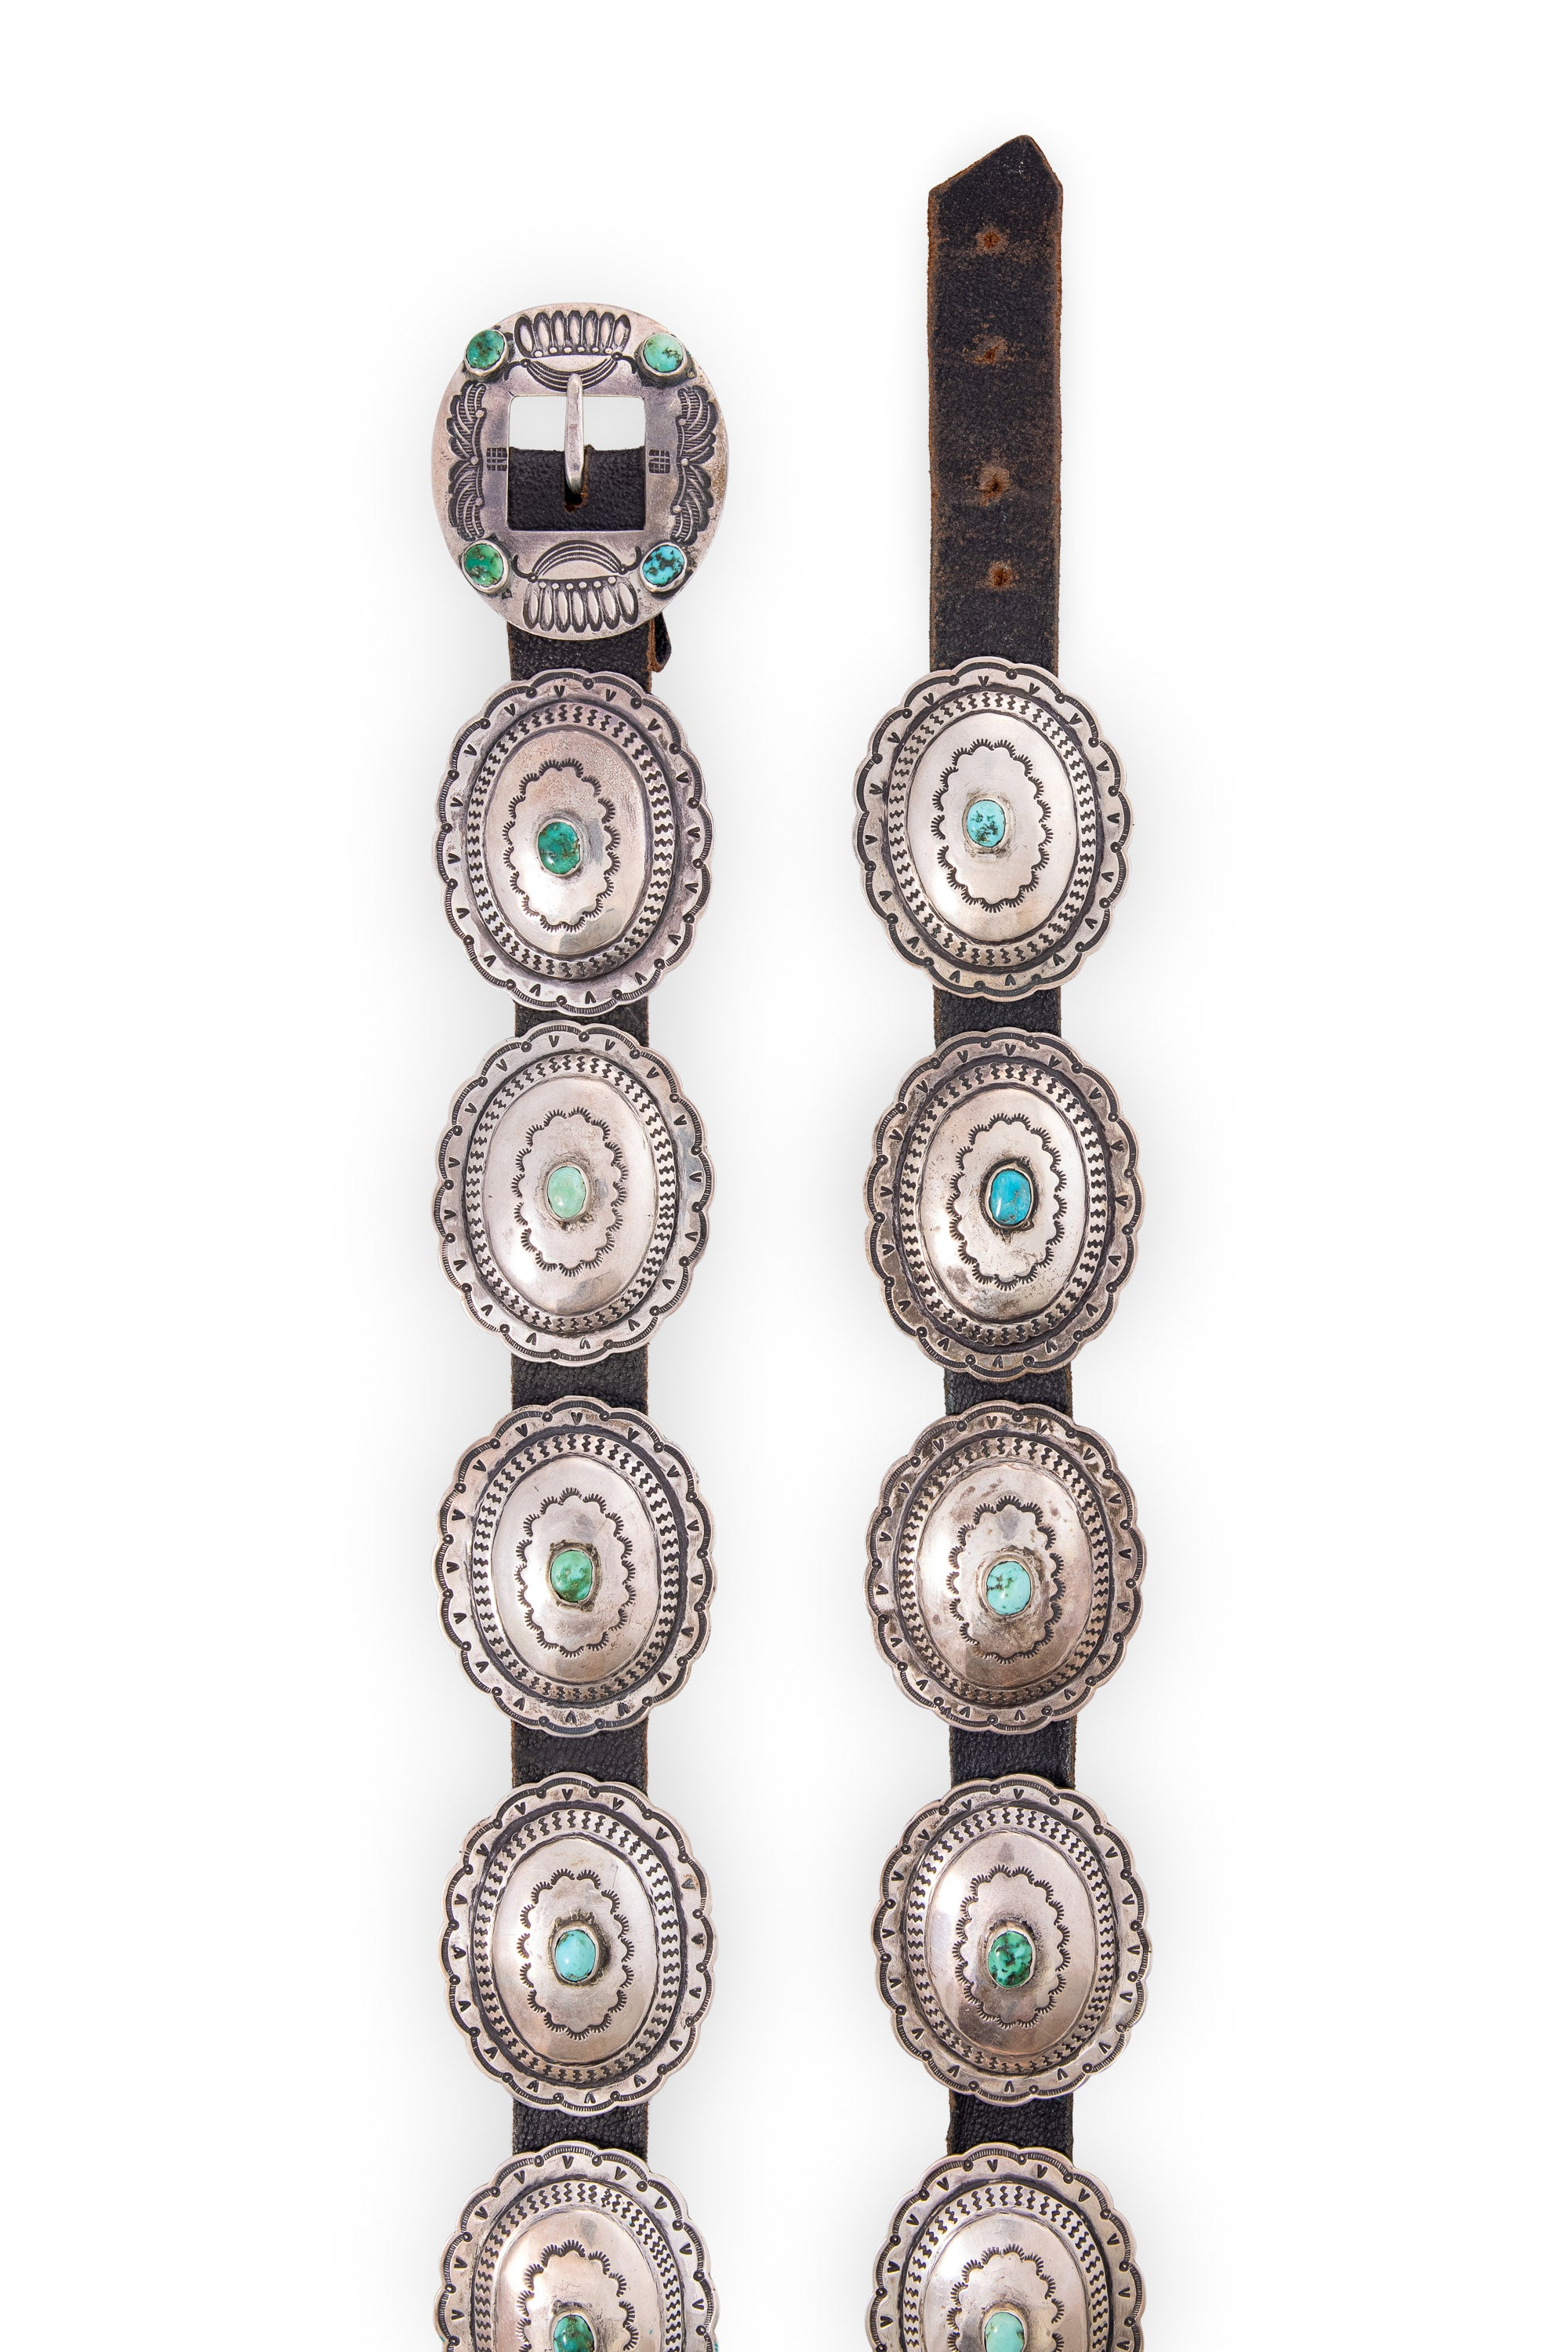 Belt, Concho, 3rd Phase Revival, Turquoise, Sterling Silver, Vintage '30s, 1019